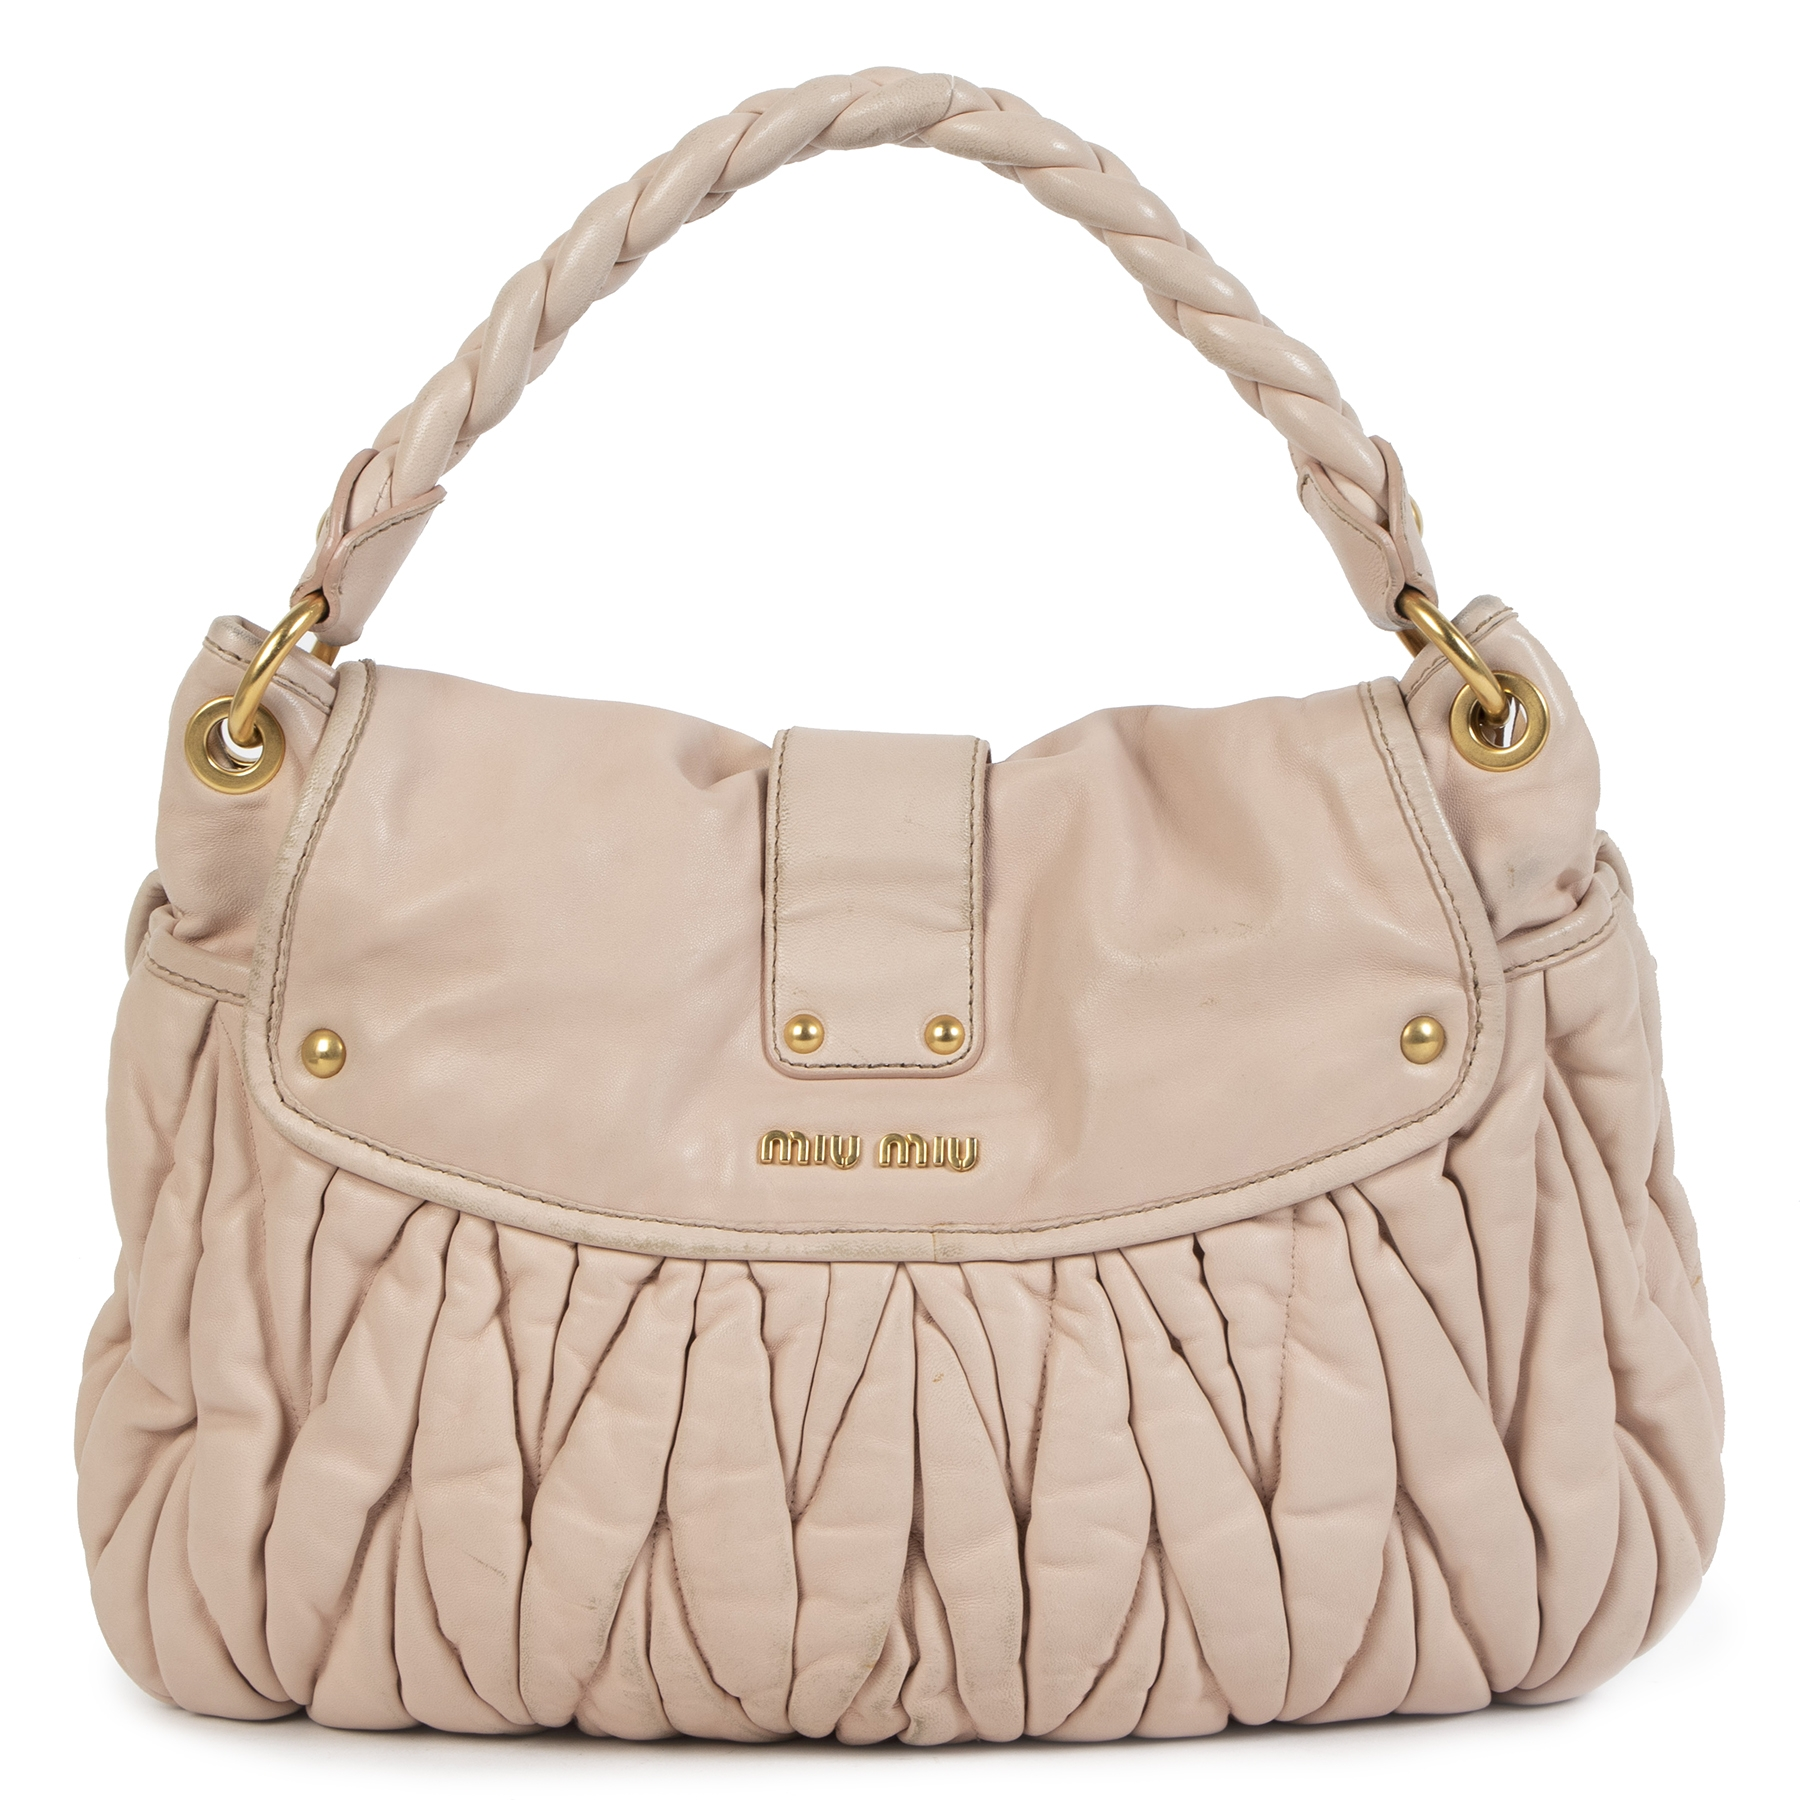 Authentic secondhand Miu Miu Matelasse Pale Pink Lux Nappa Leather Coffer Hobo Bag designer bags accessories shoes luxury vintage webshop designer fashion fashionista safe secure online shopping worldwide shipping